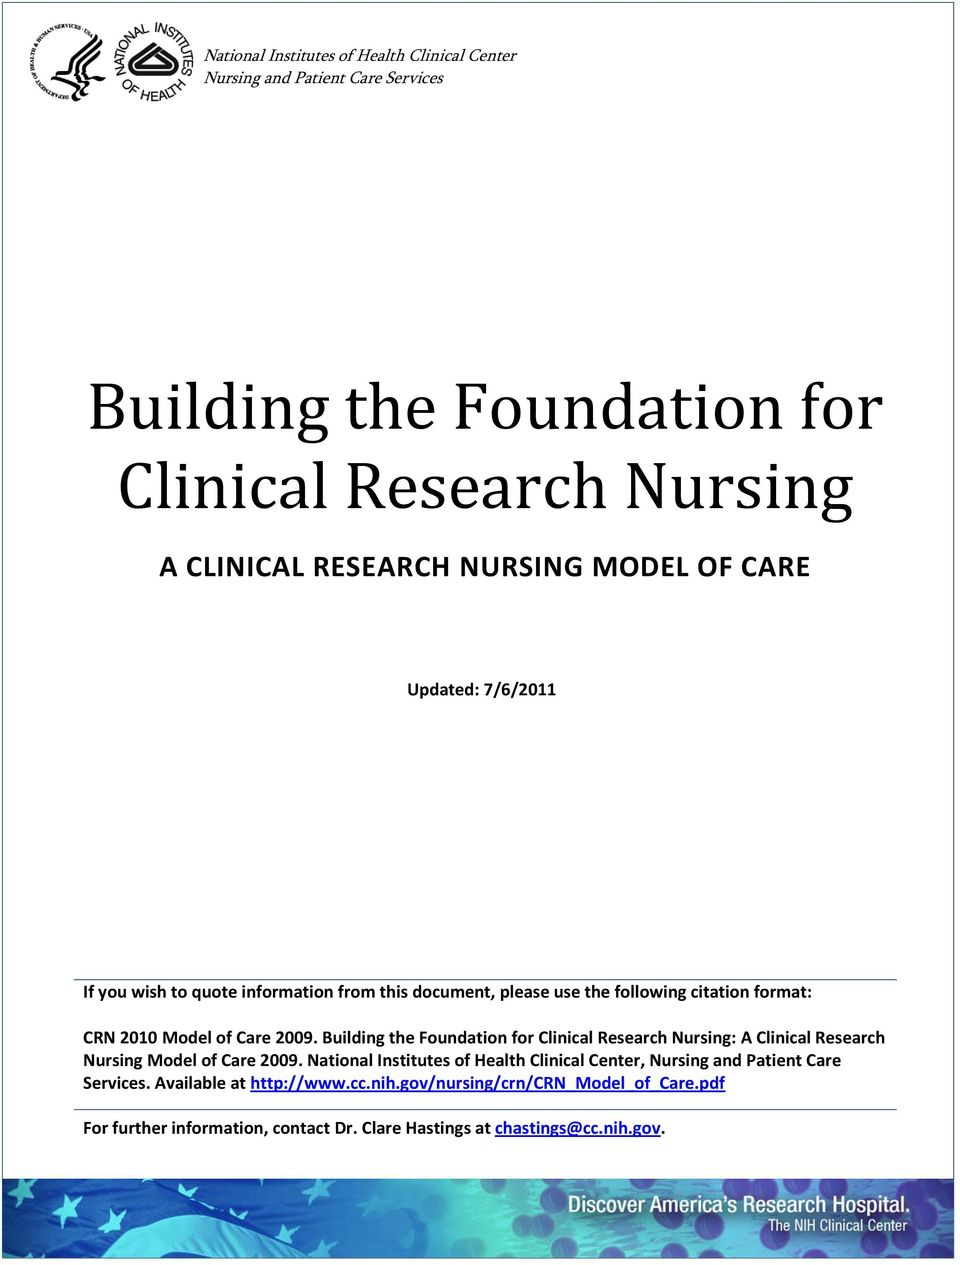 Building the Foundation for Clinical Research Nursing: A Clinical Research Nursing Model of Care 2009.